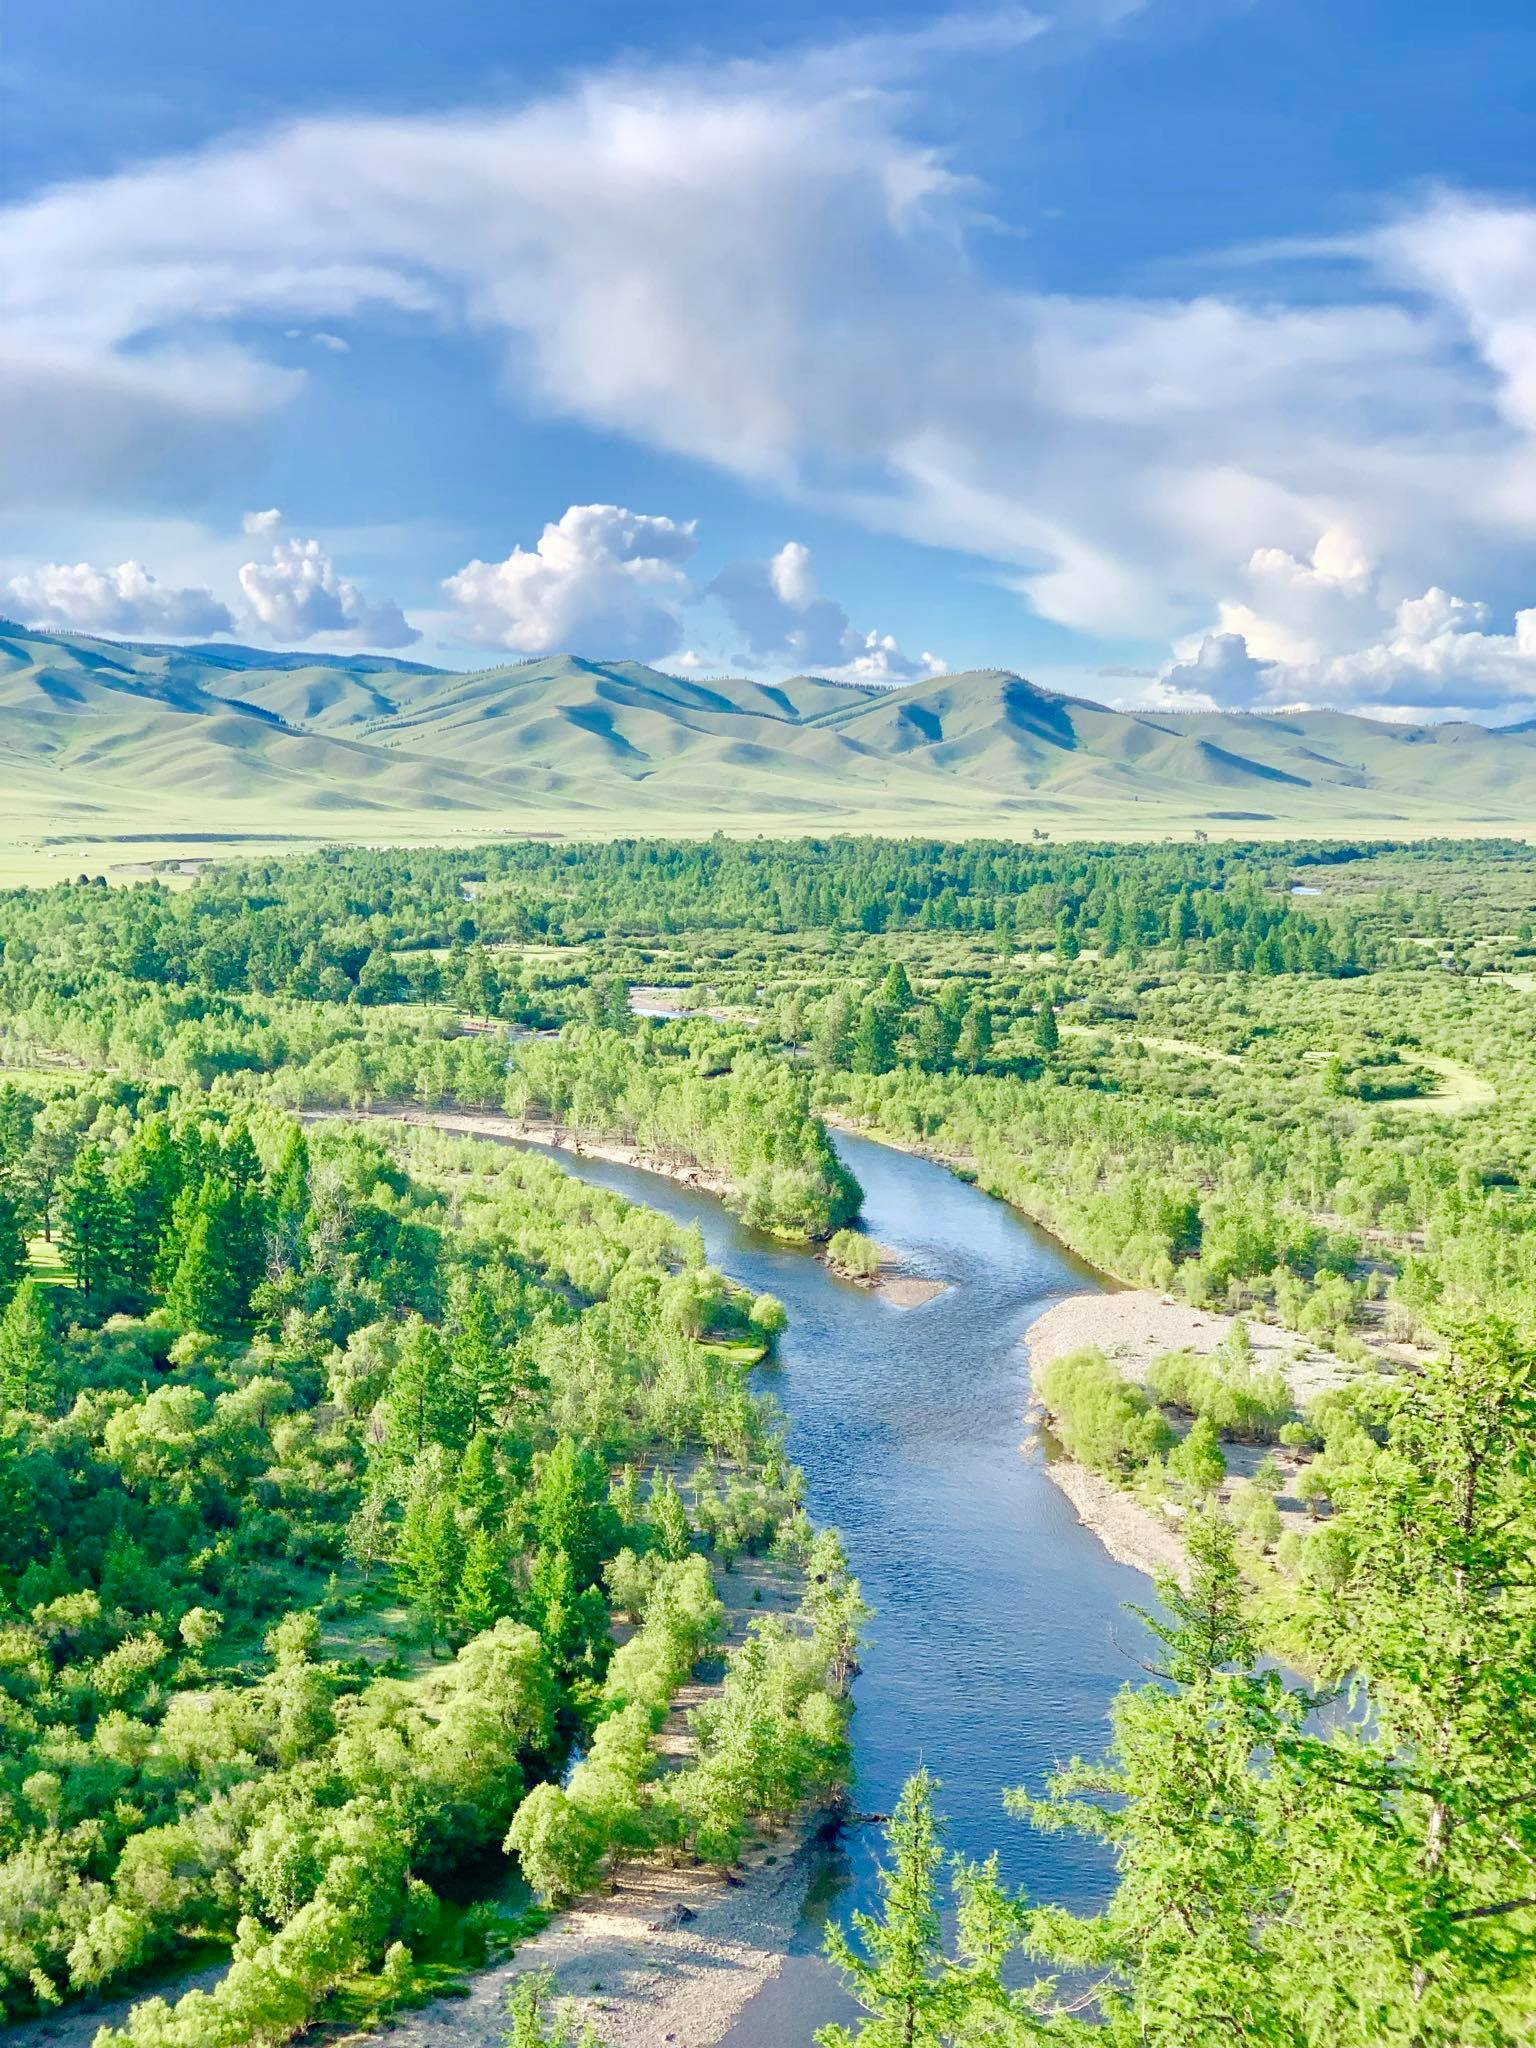 UK Passport Holder Visa Guide Tips on How a British Citizen Can Get a Tourist Visa to Mongolia4